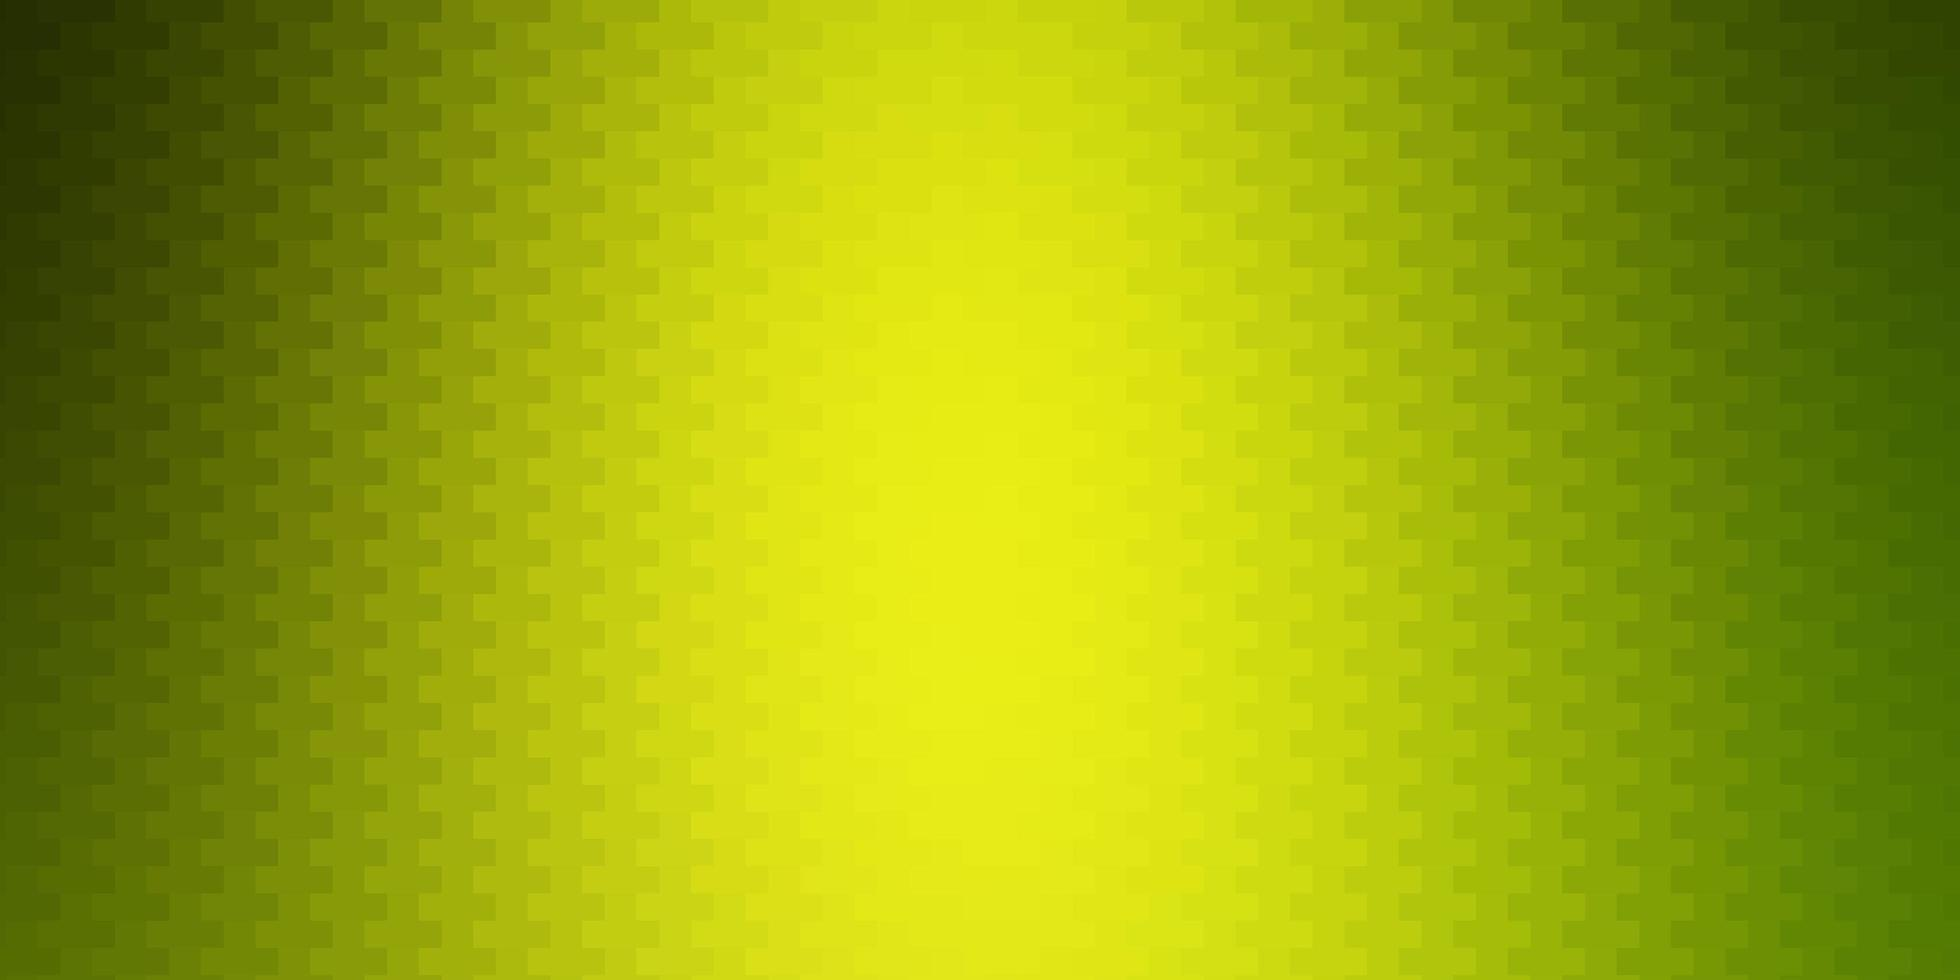 Light Green template with rectangles. vector